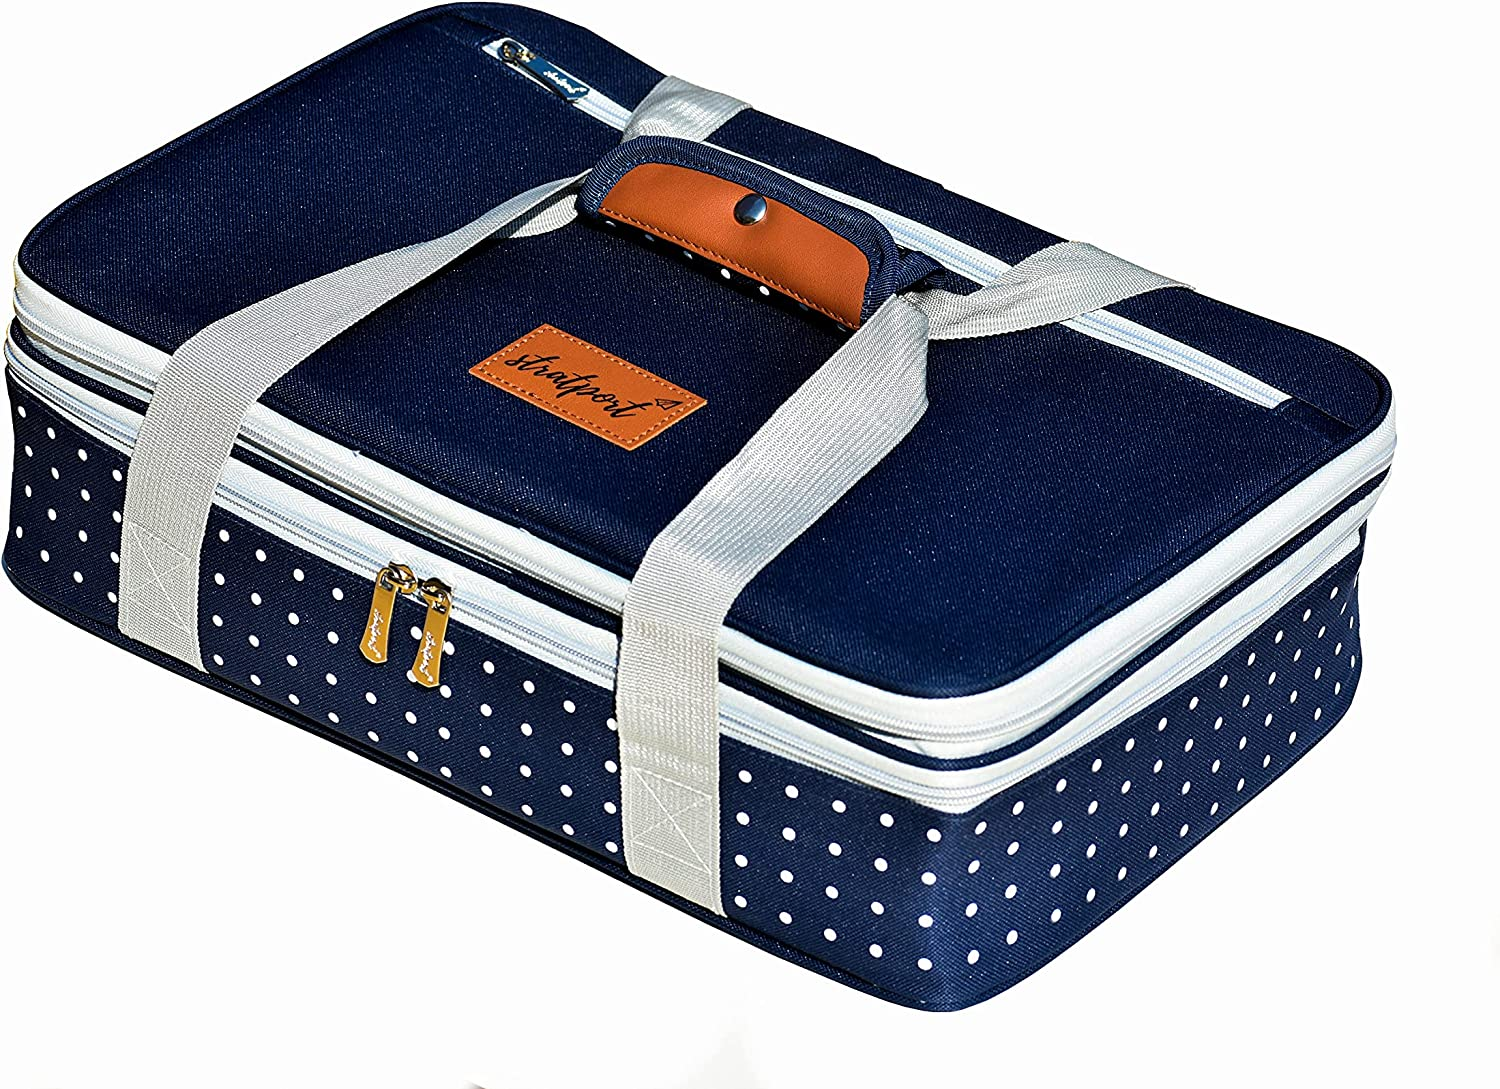 Insulated Casserole Carrier, Expandable Lasagna Lugger, Food Carrier for Hot or Cold Food Fits 9